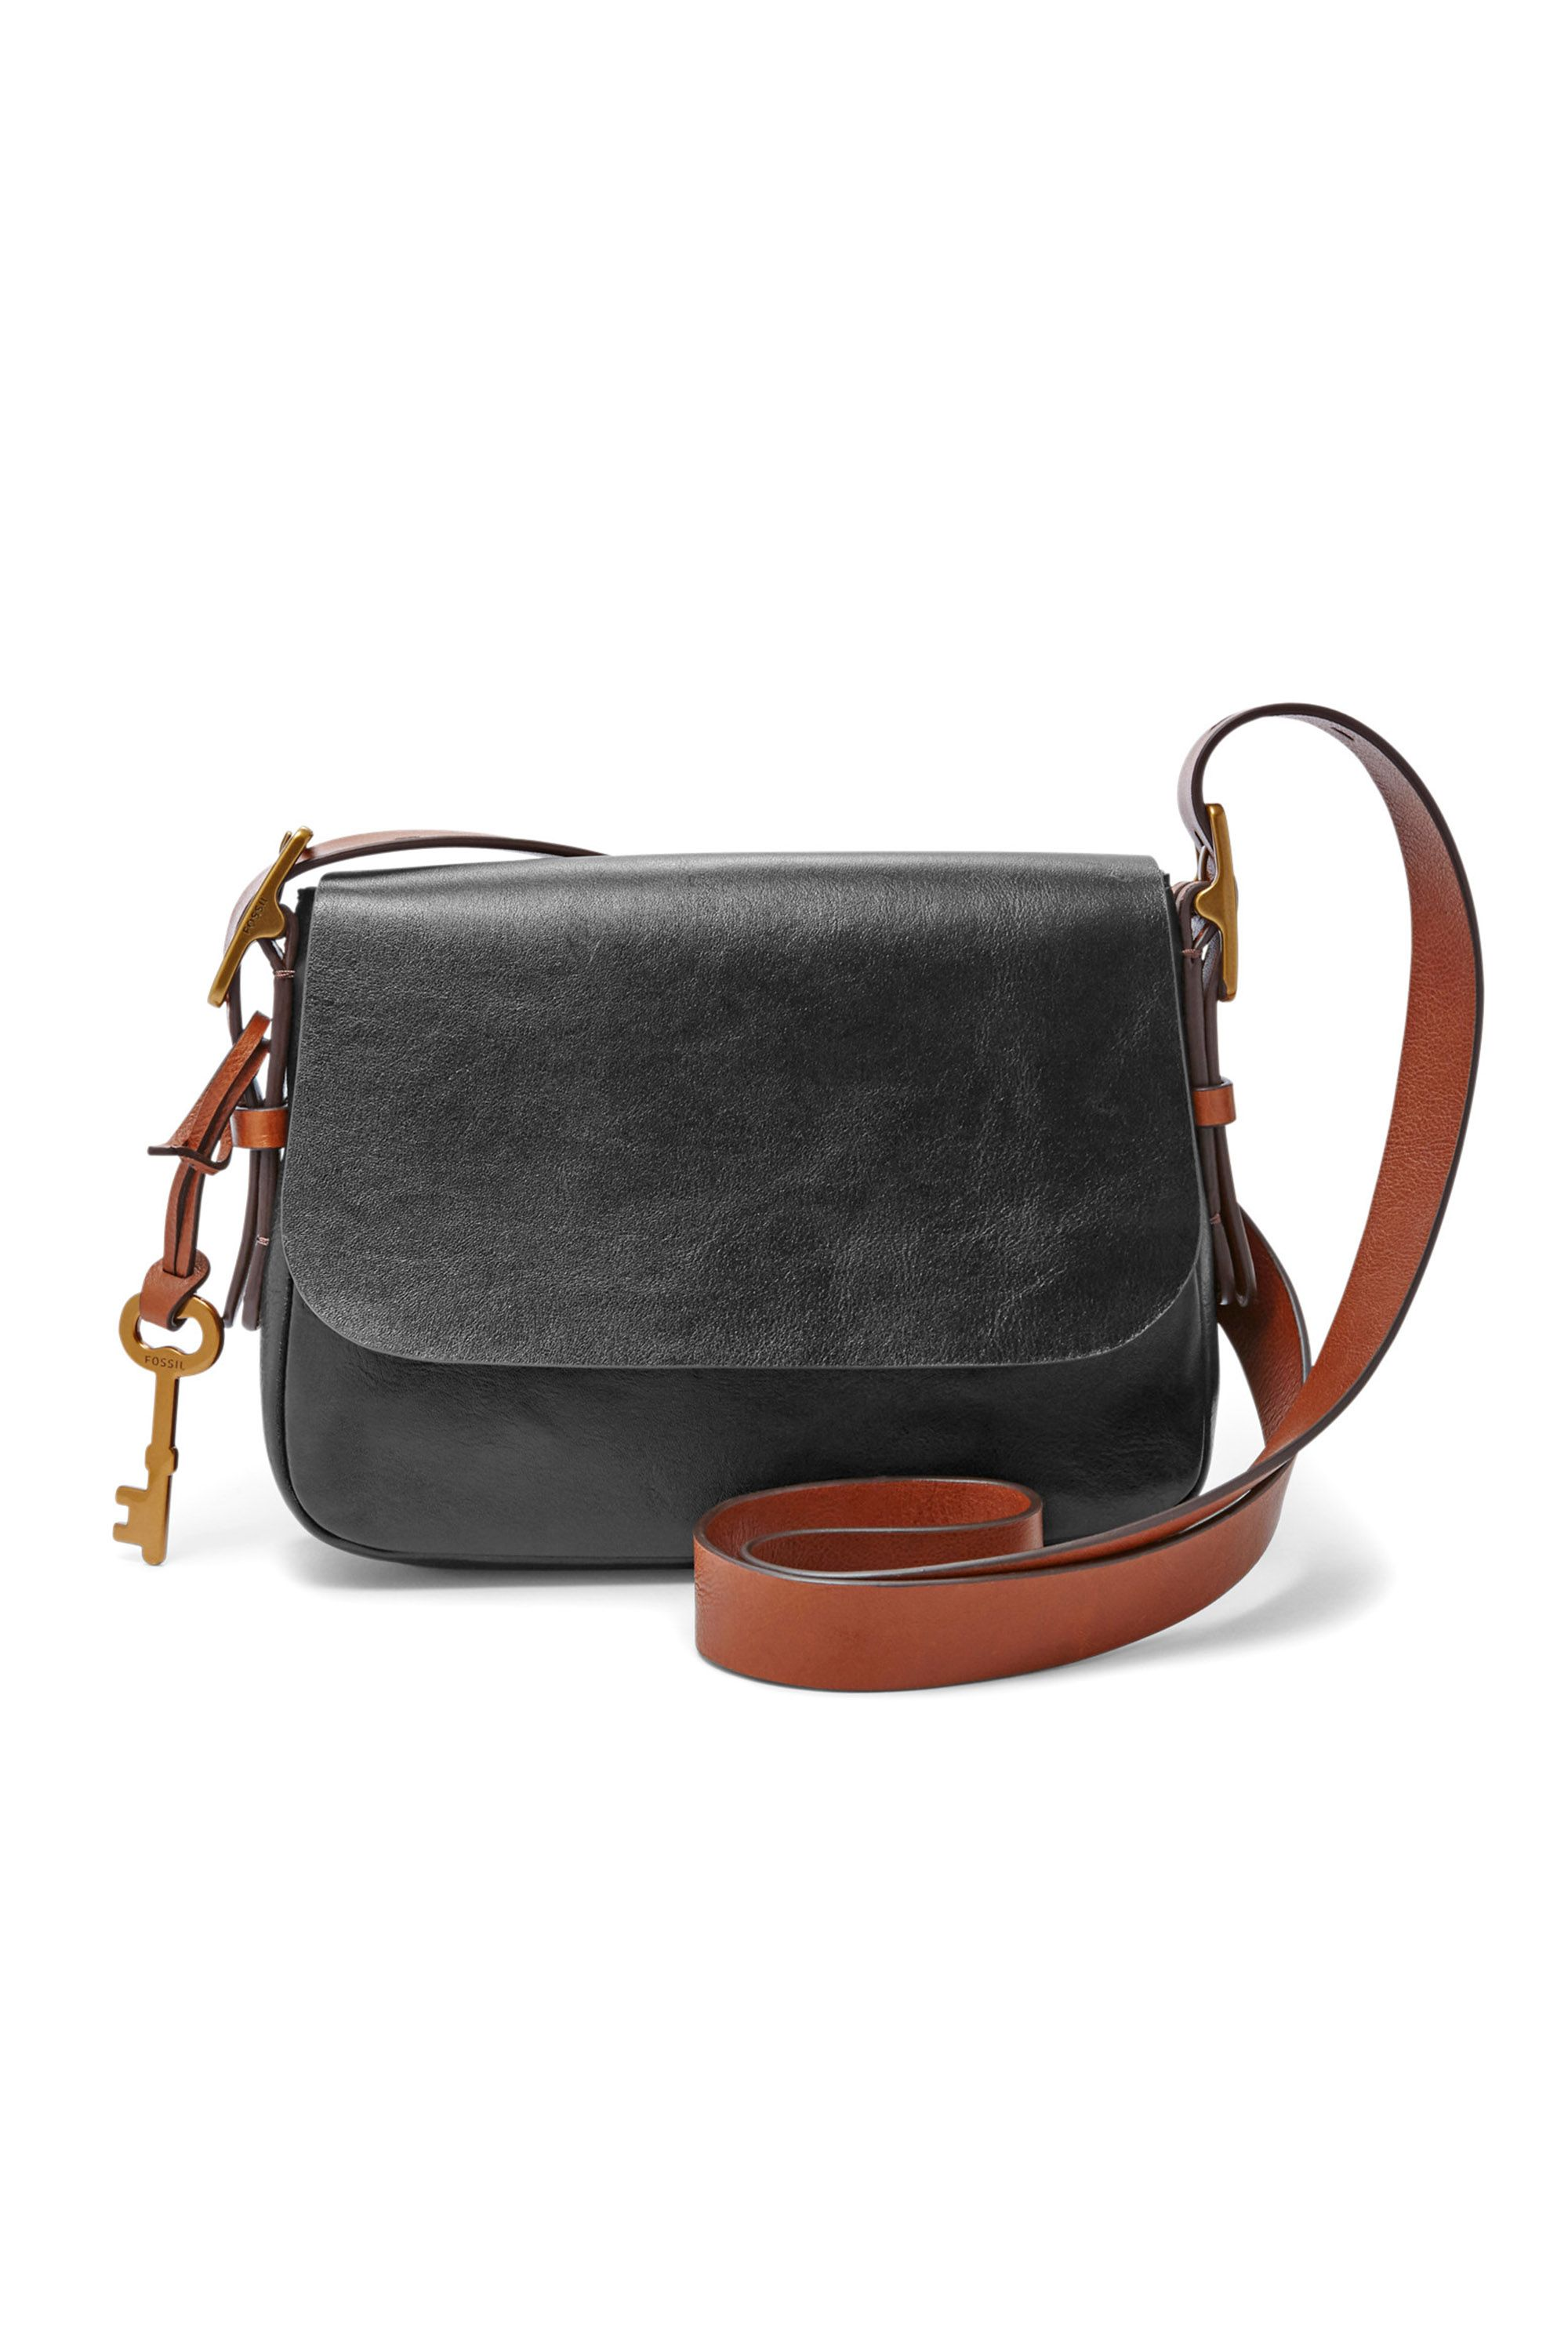 24 Crossbody Bags For Summer 2017 Black Leather Purses Women